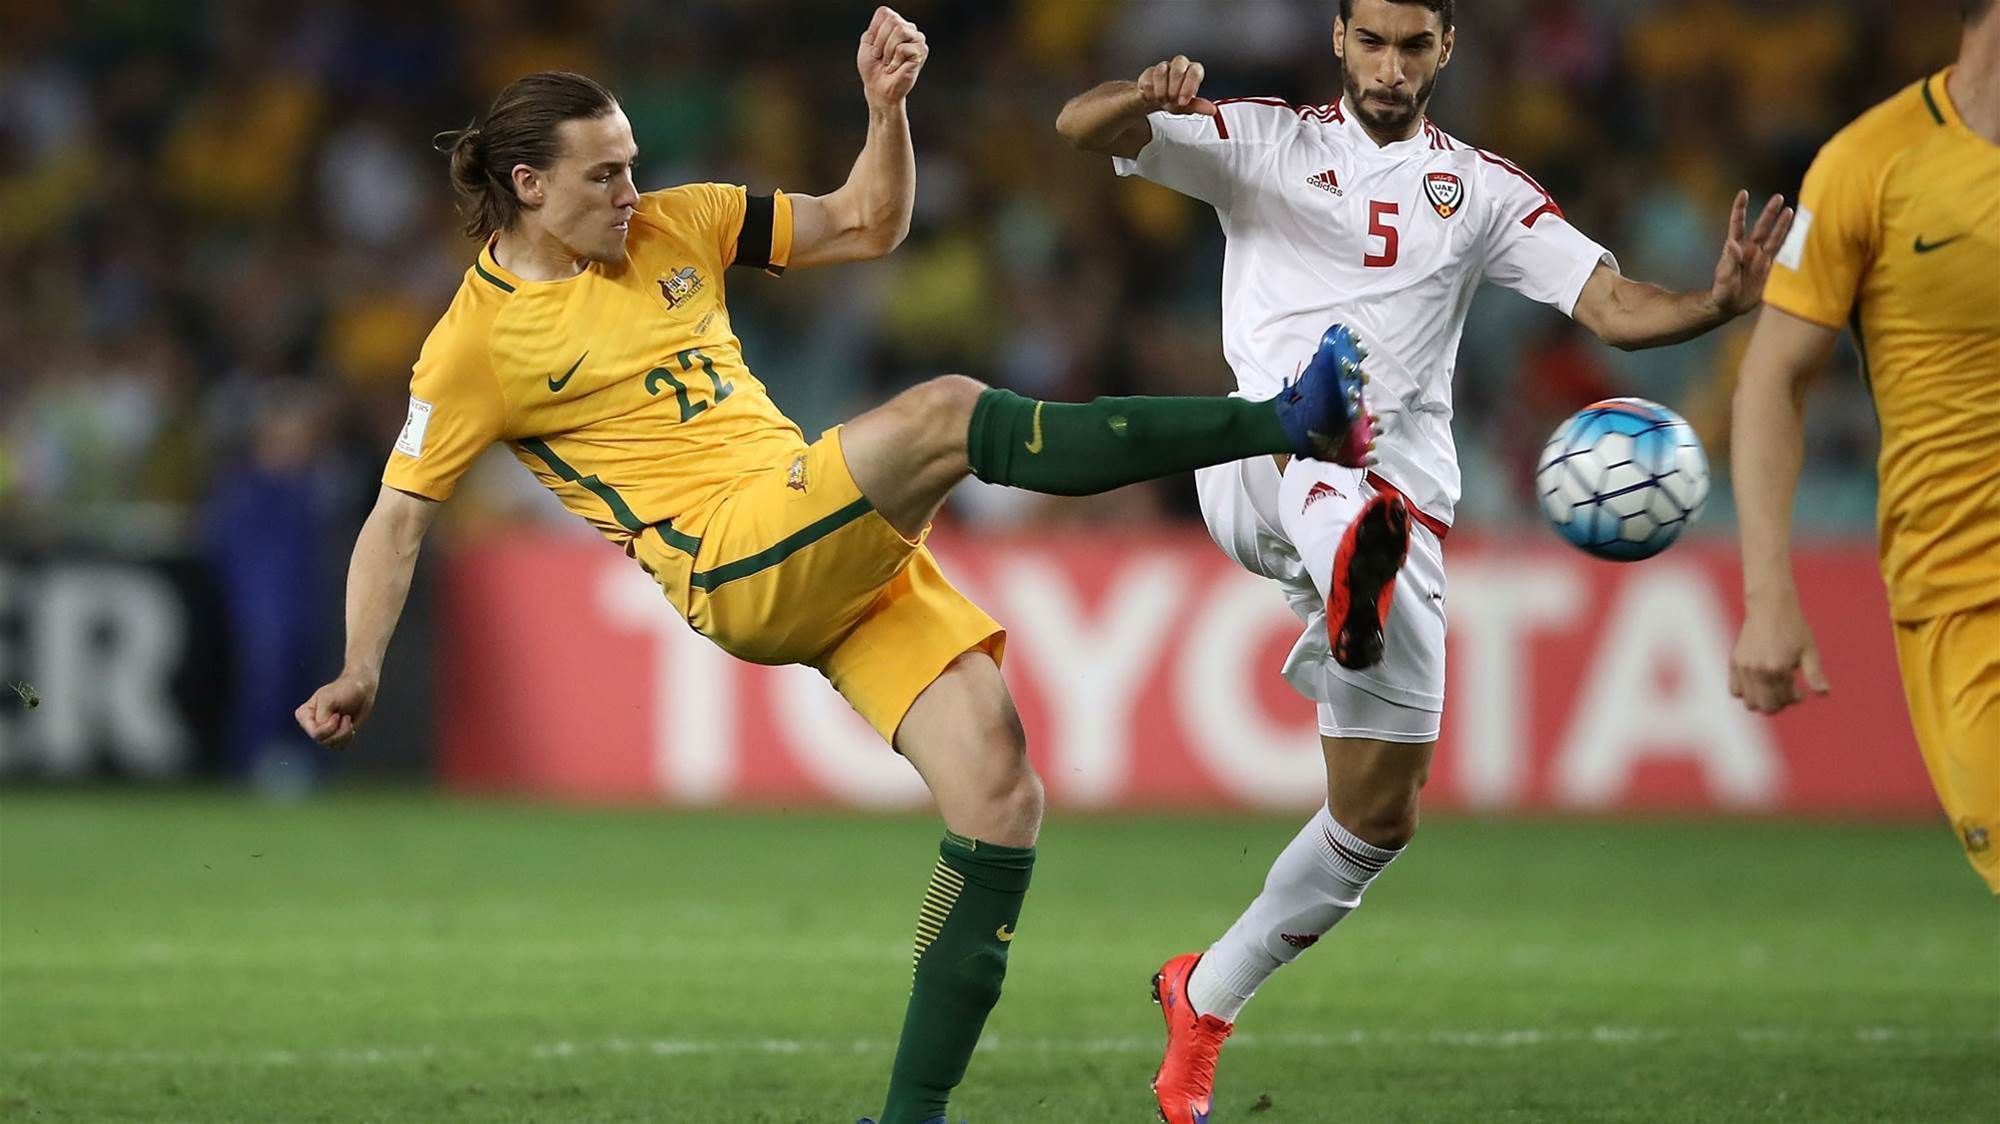 Ange: No Mooy, No Rogic, no worries